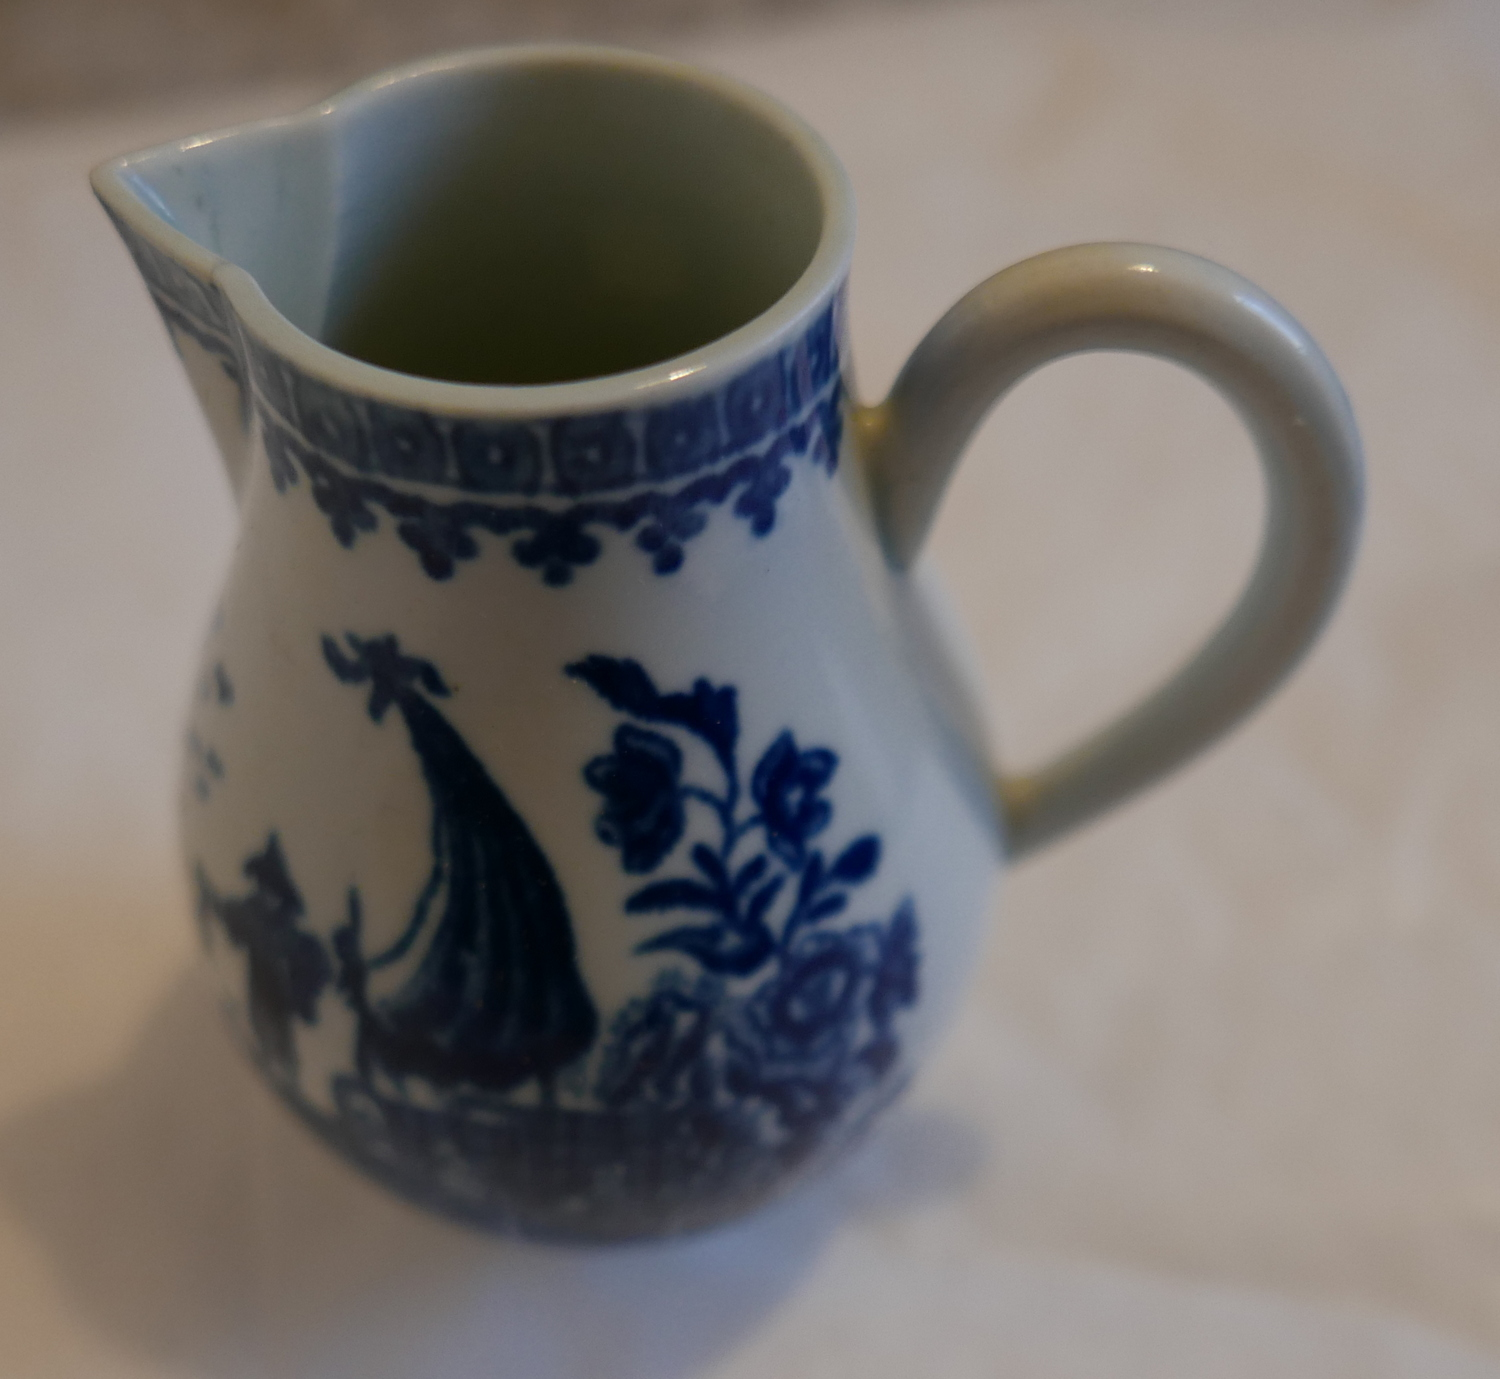 "Lot 53 - Antique 18th Century English Porcelain Sparrow Beak Jug 3 1/2"" tall - excellent cond."